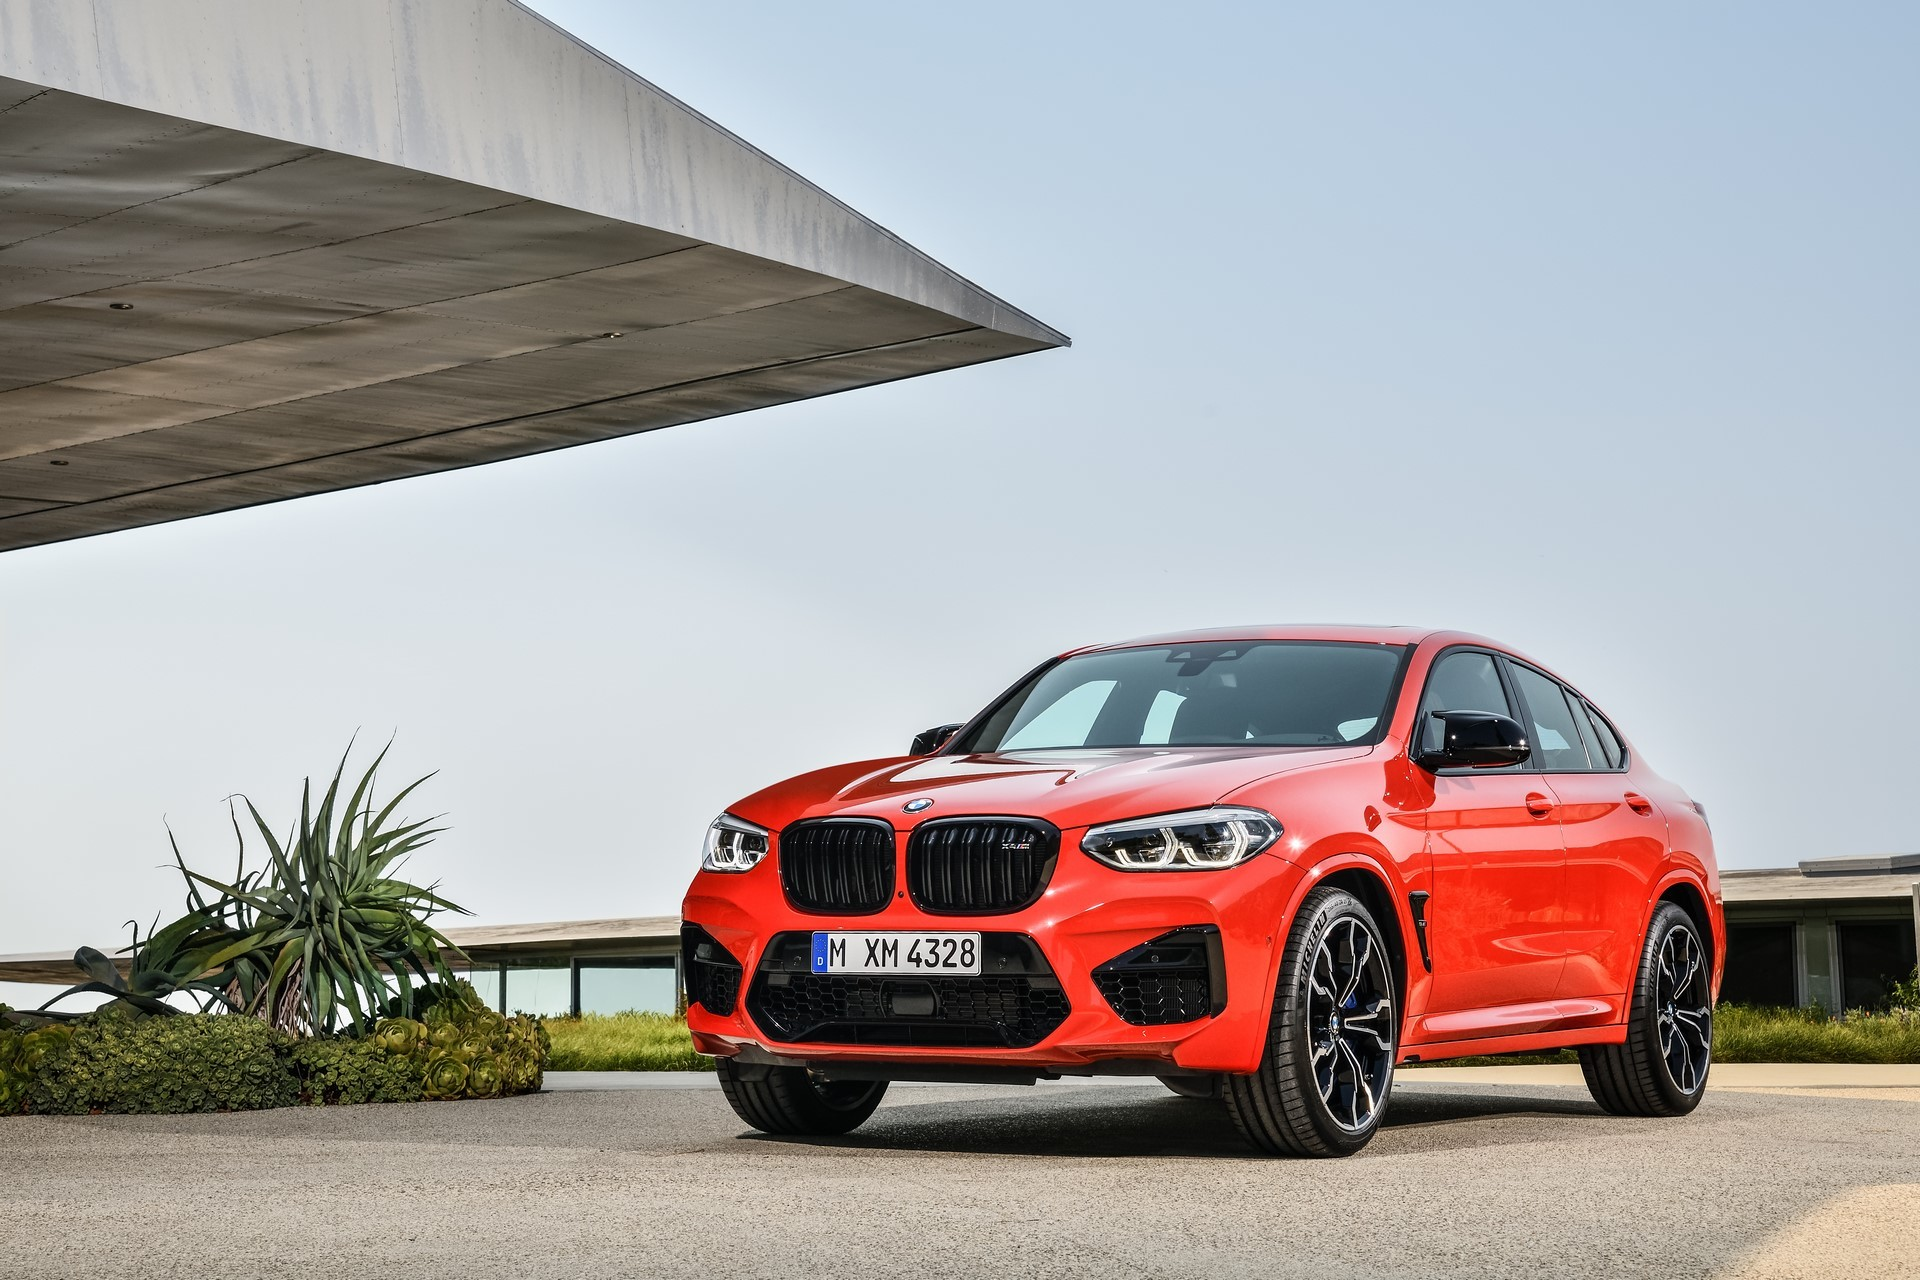 BMW X3 M and X4 M 2019 (57)